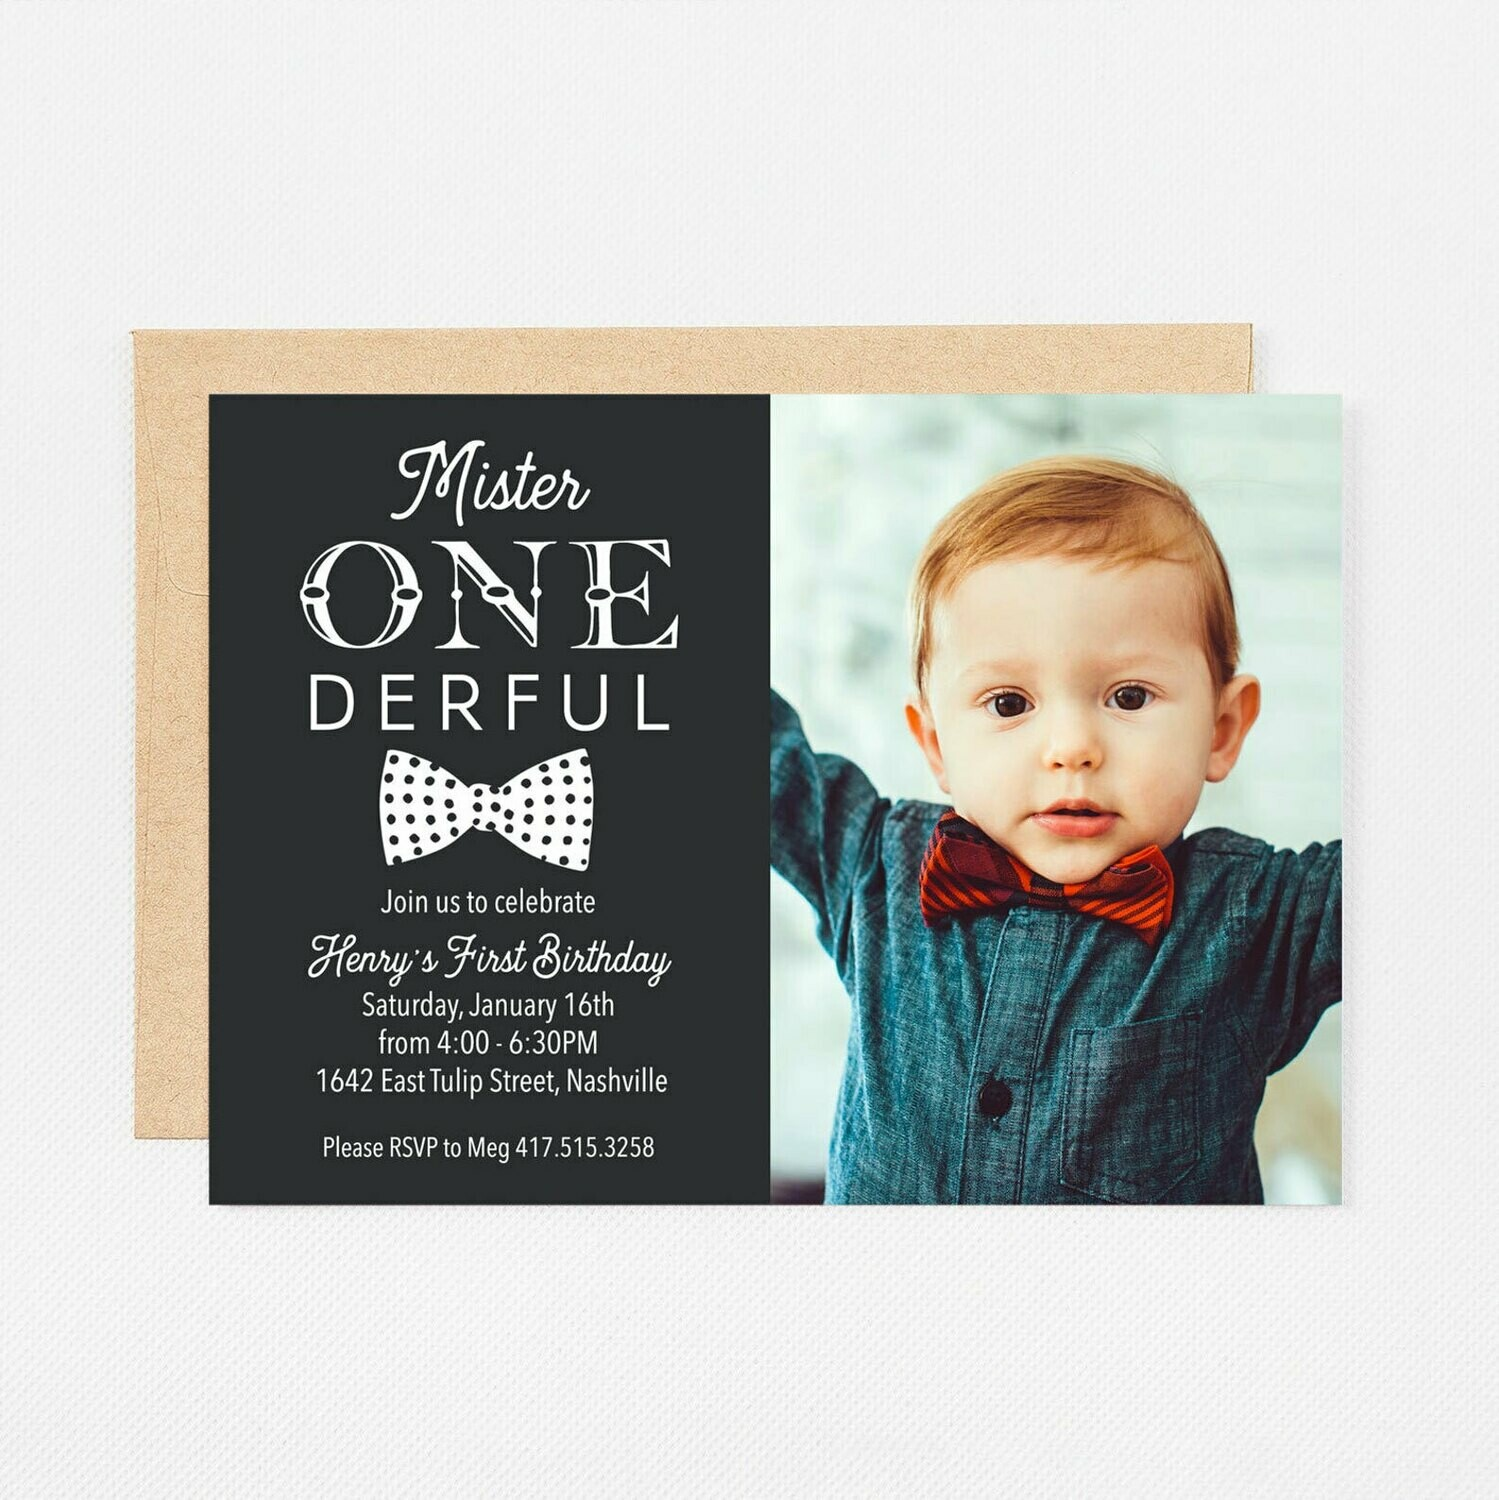 First Birthday Mr. ONEderful Photo Invitation - Digital or Printed